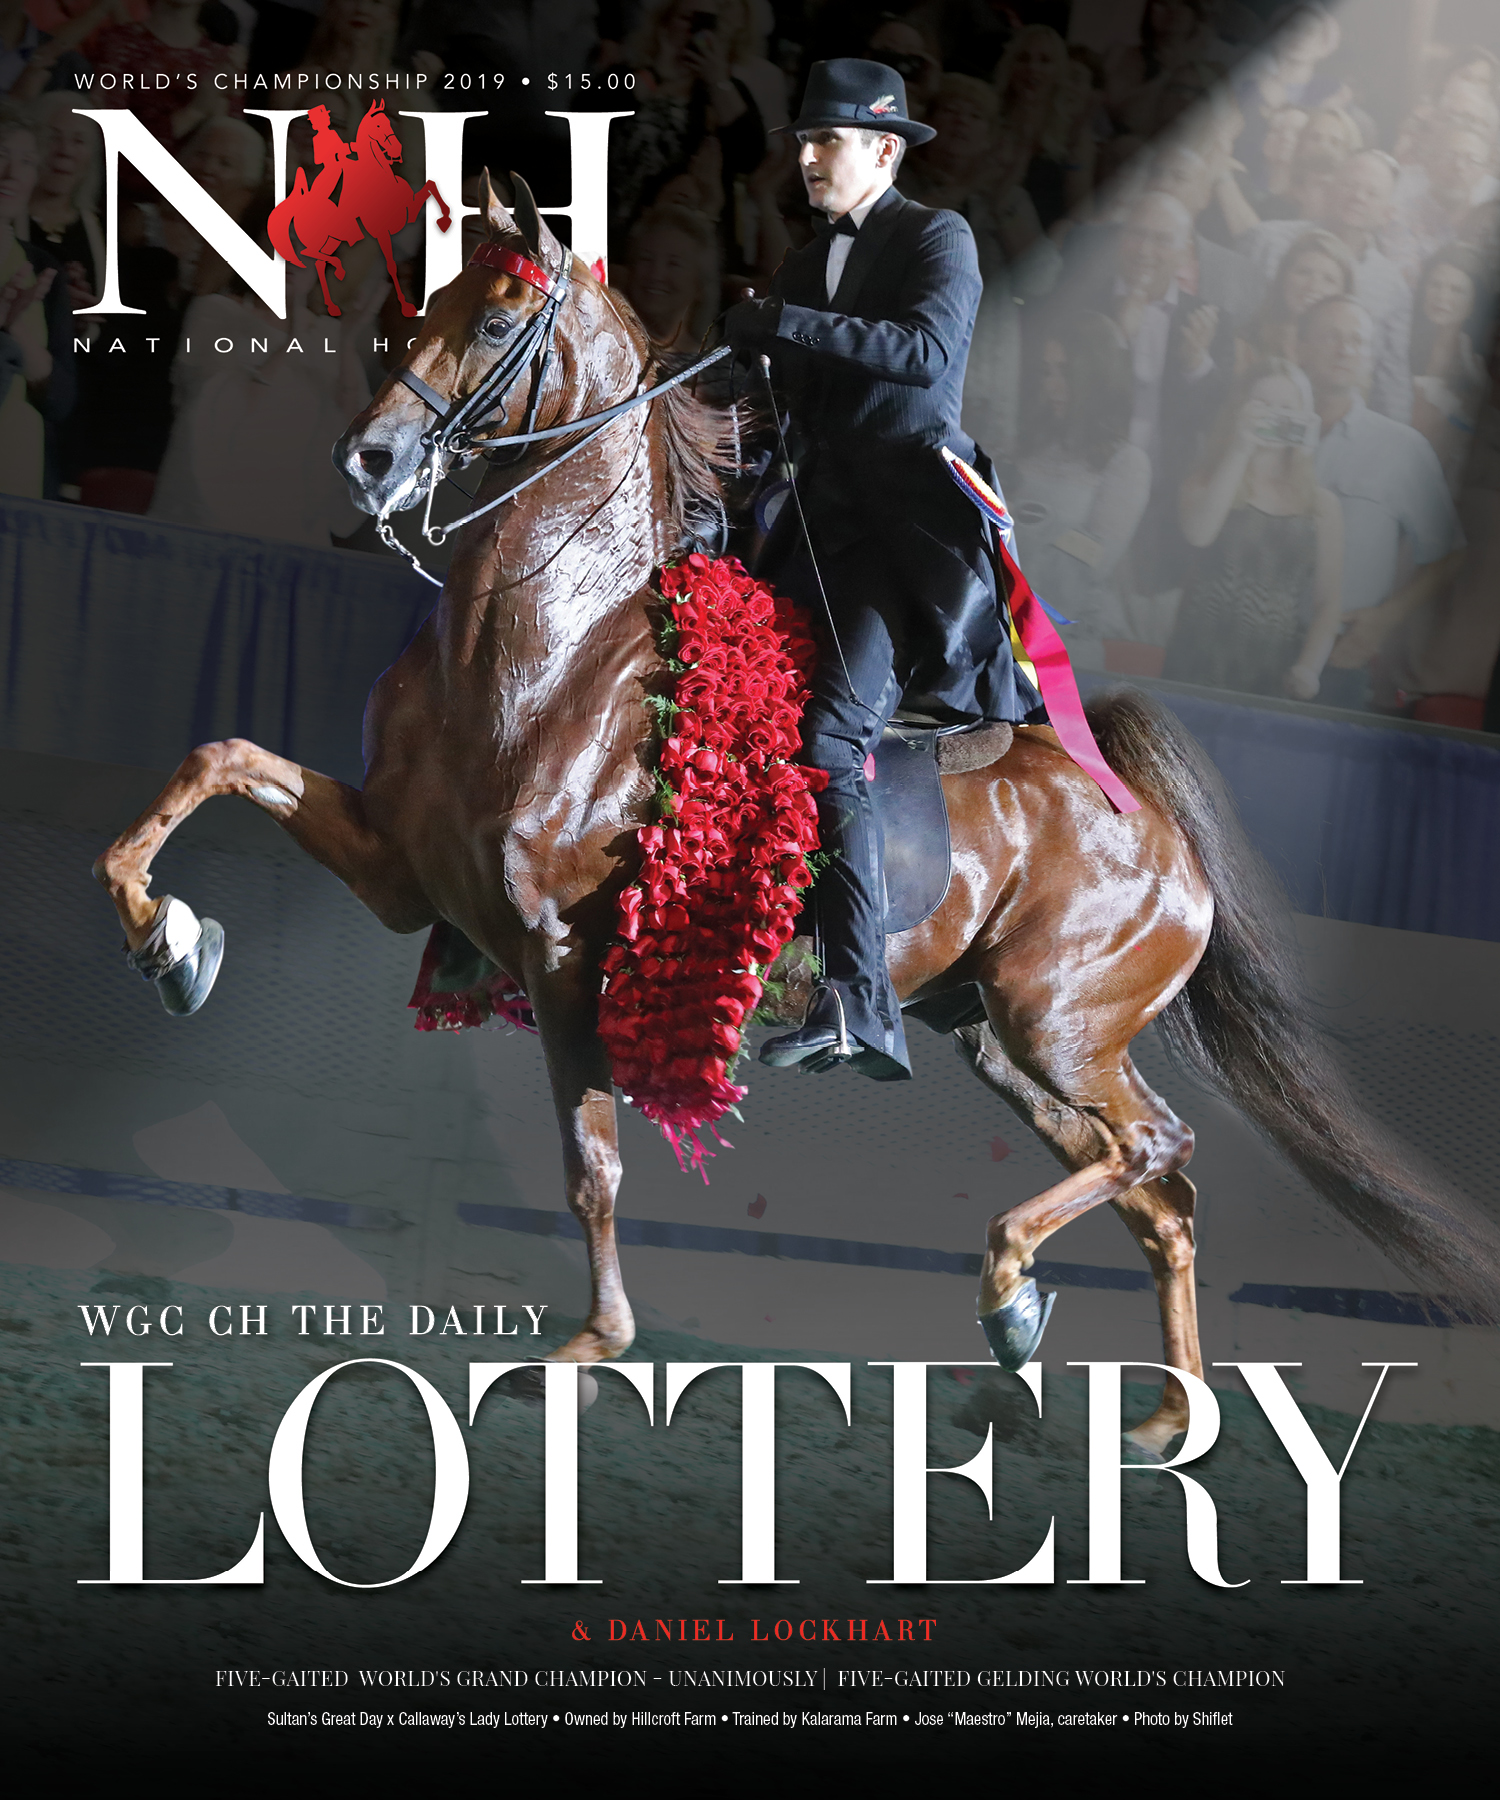 The Daily Lottery National Horseman